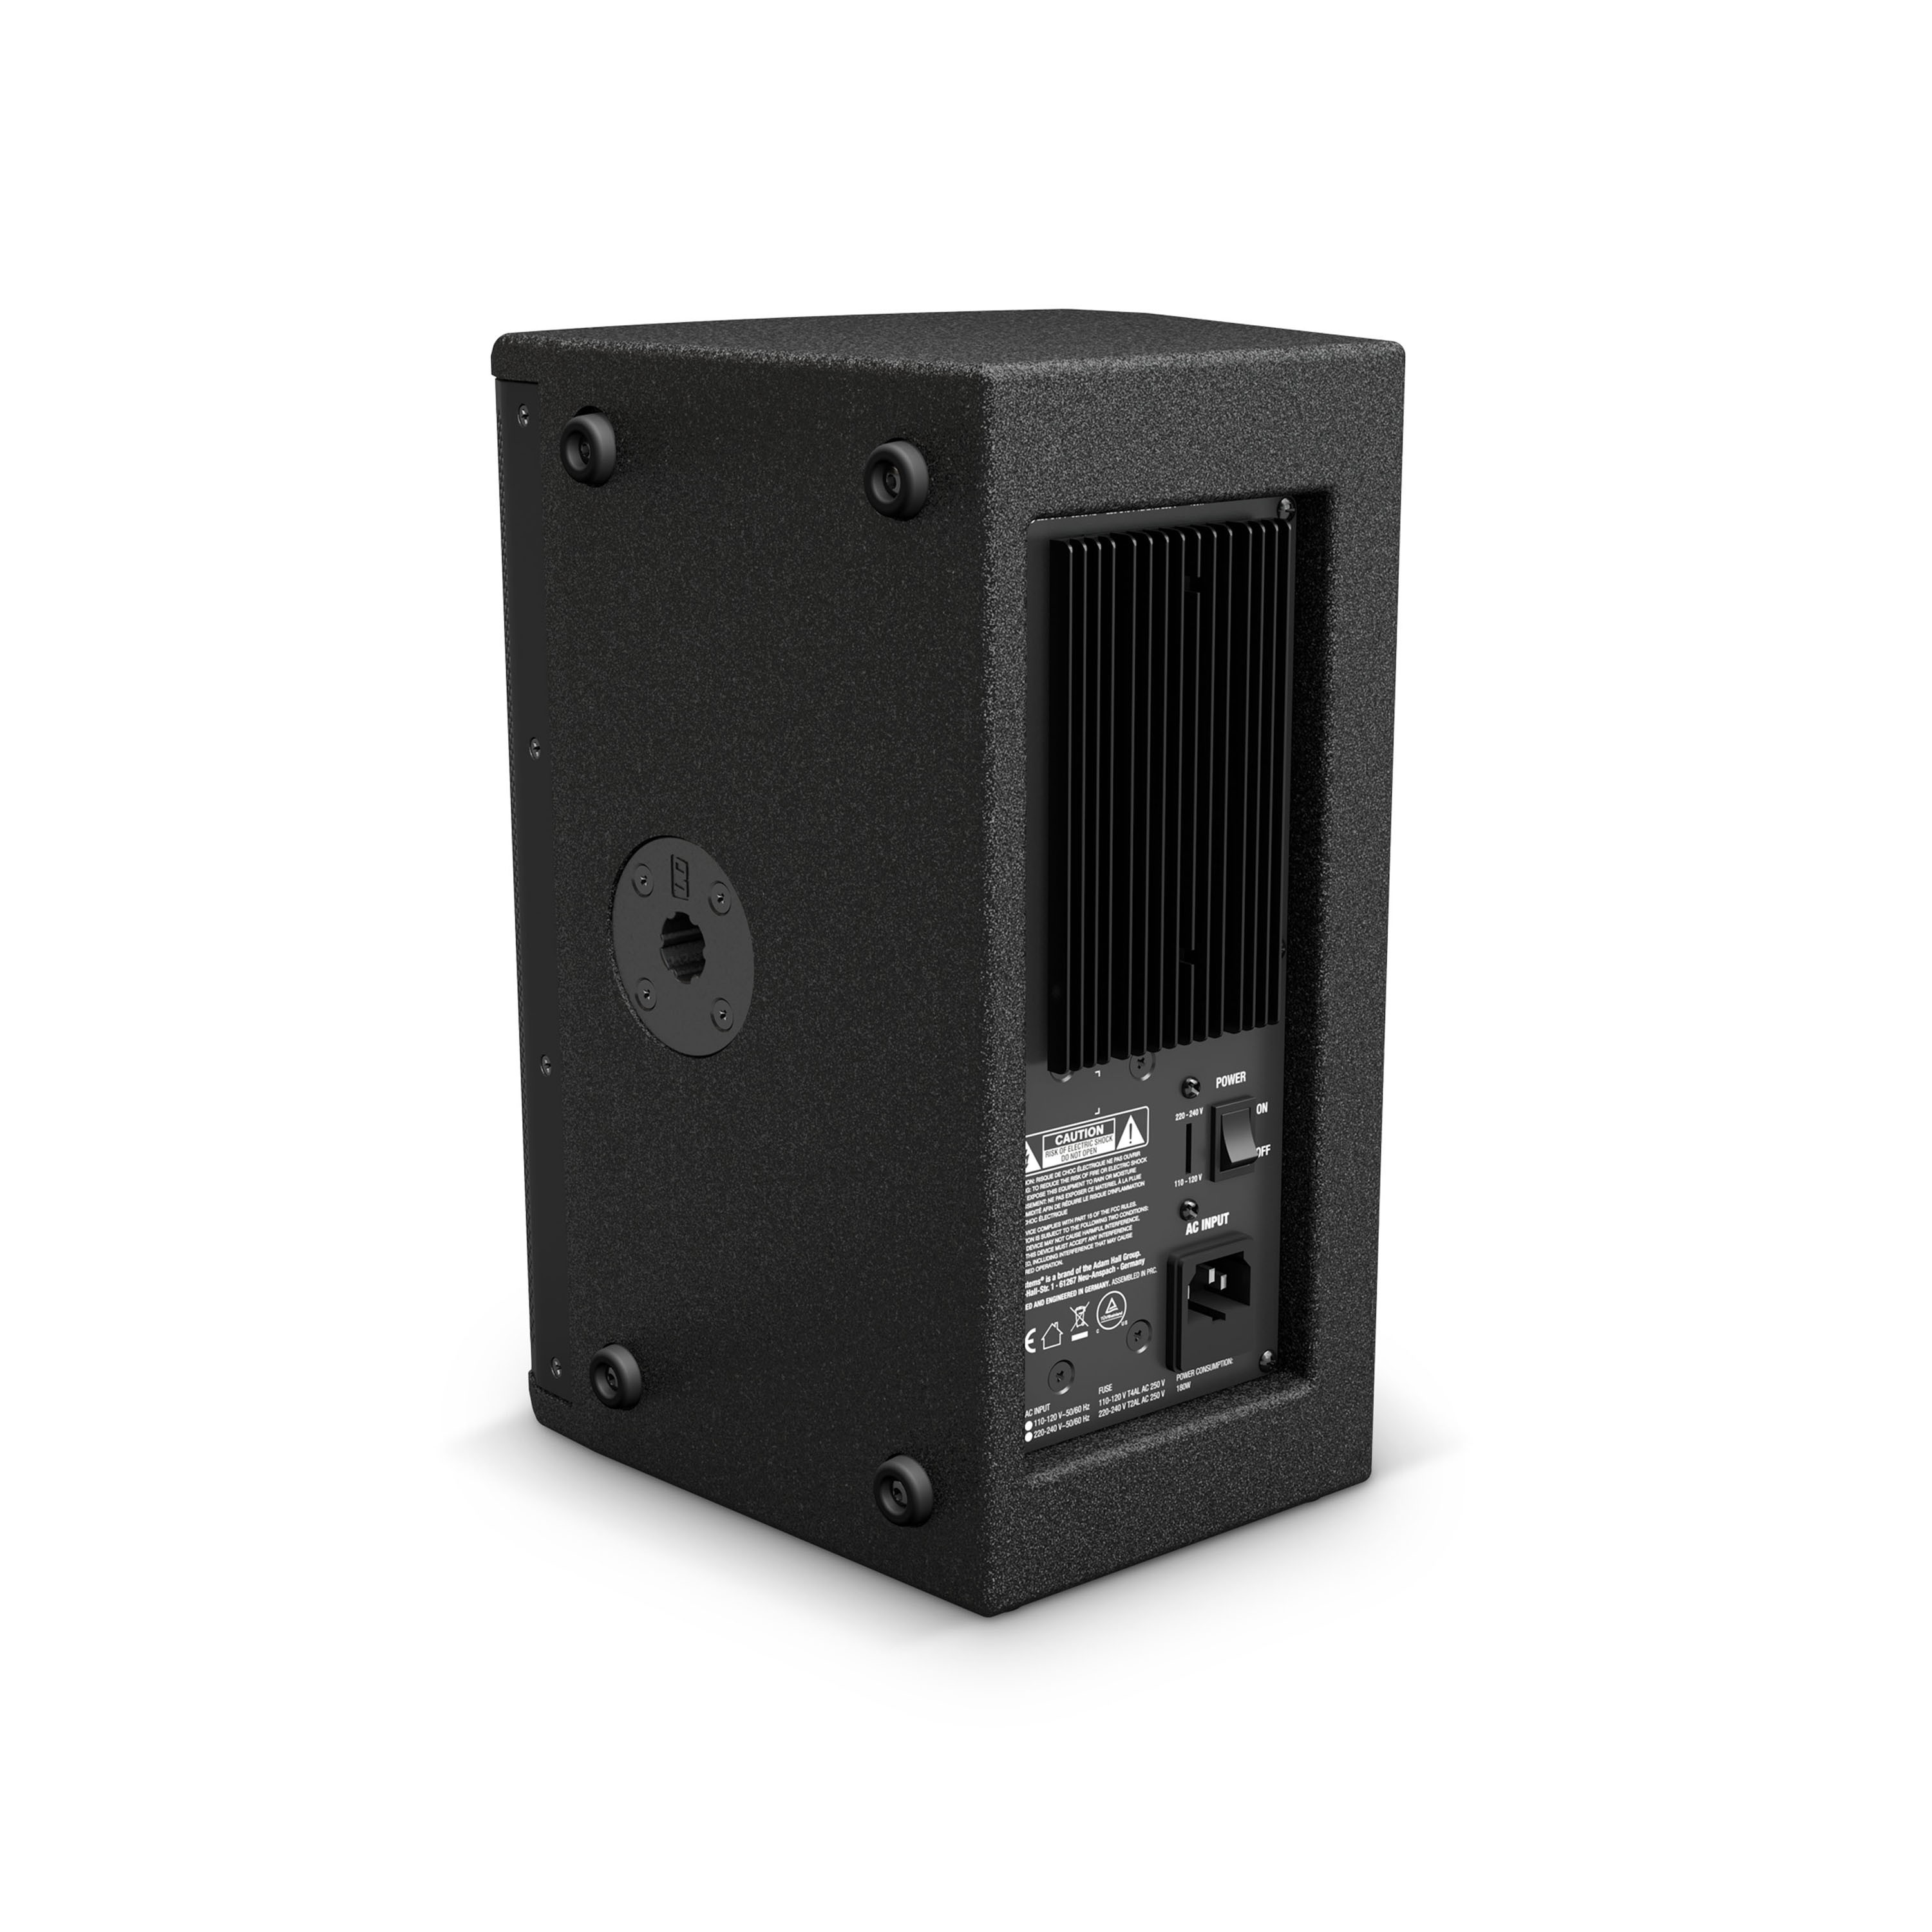 MIX 6 A G3 Active 2-Way Loudspeaker with Integrated 4-Channel Mixer